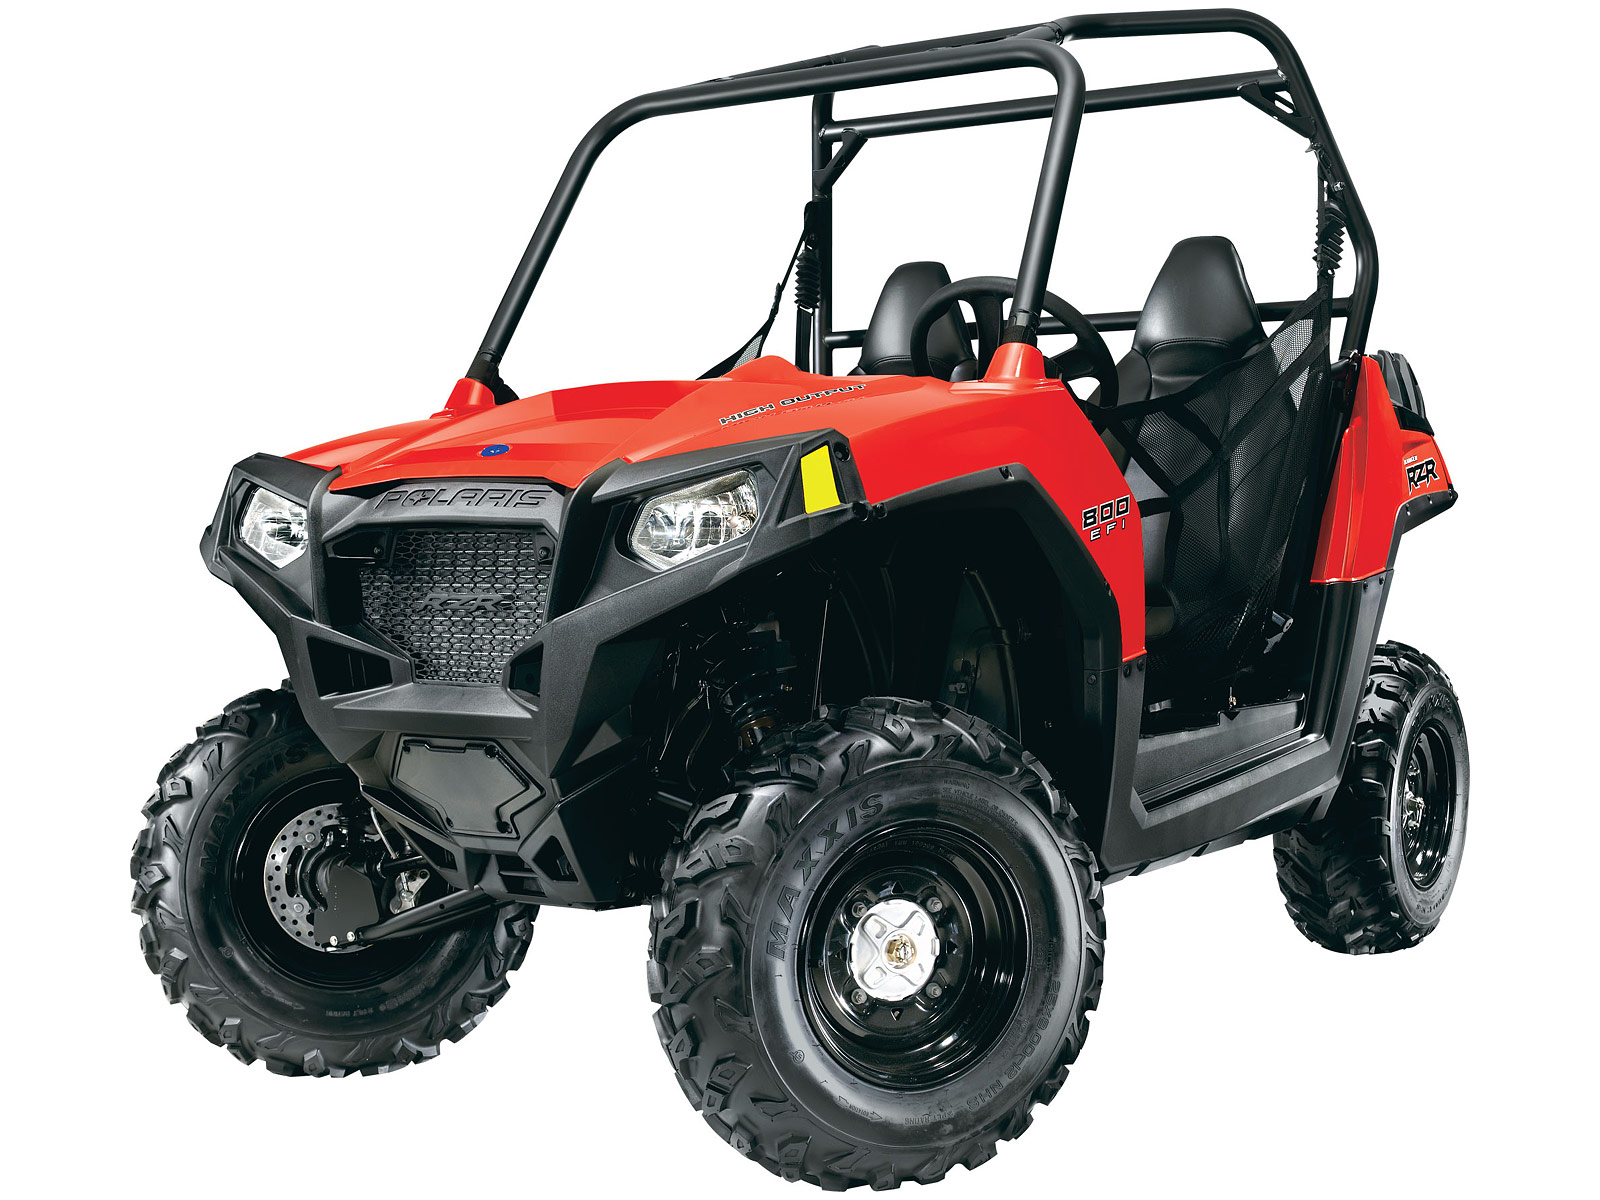 2012 polaris ranger rzr 800 atv pictures specifications. Black Bedroom Furniture Sets. Home Design Ideas